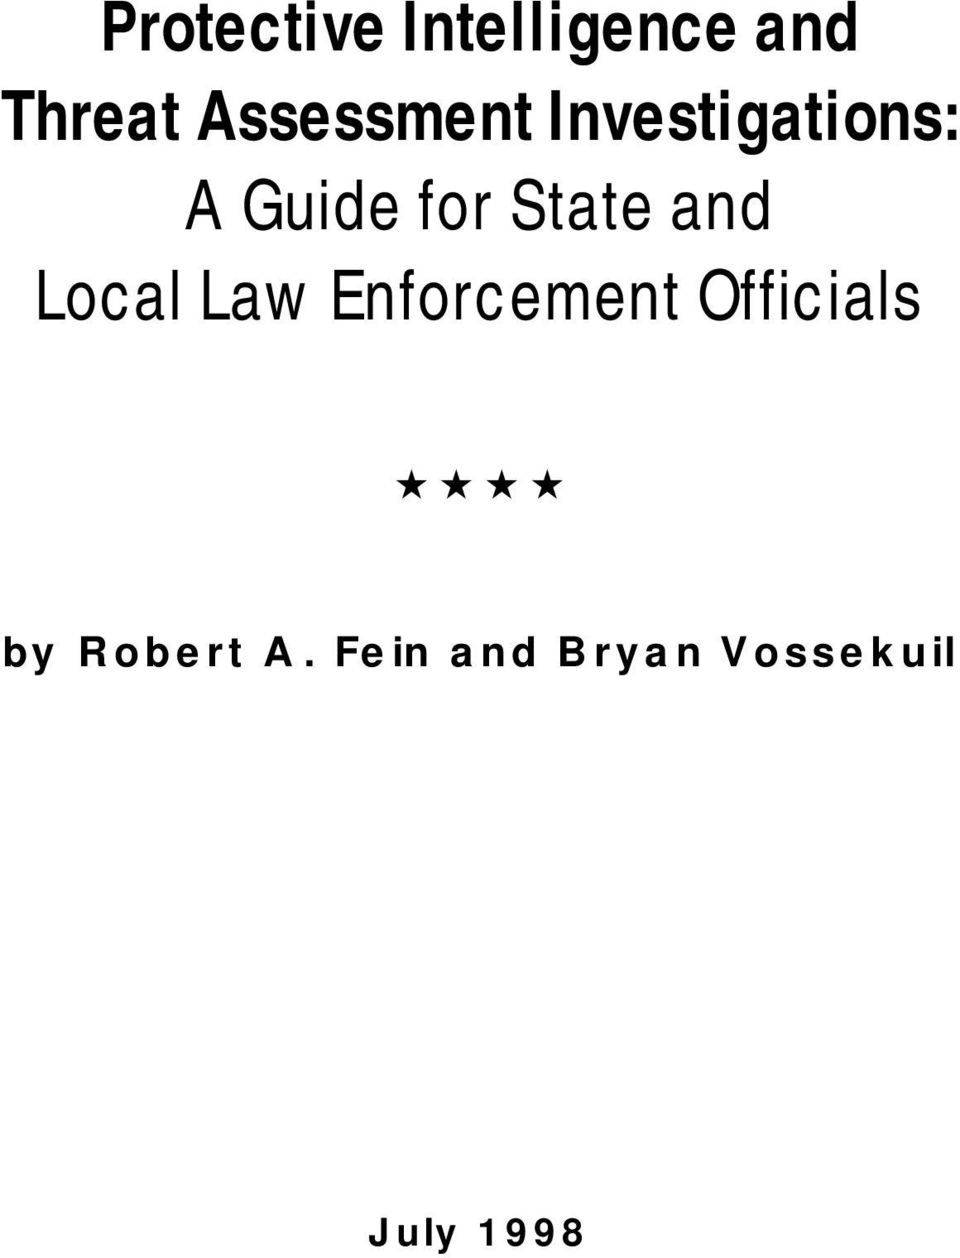 State and Local Law Enforcement